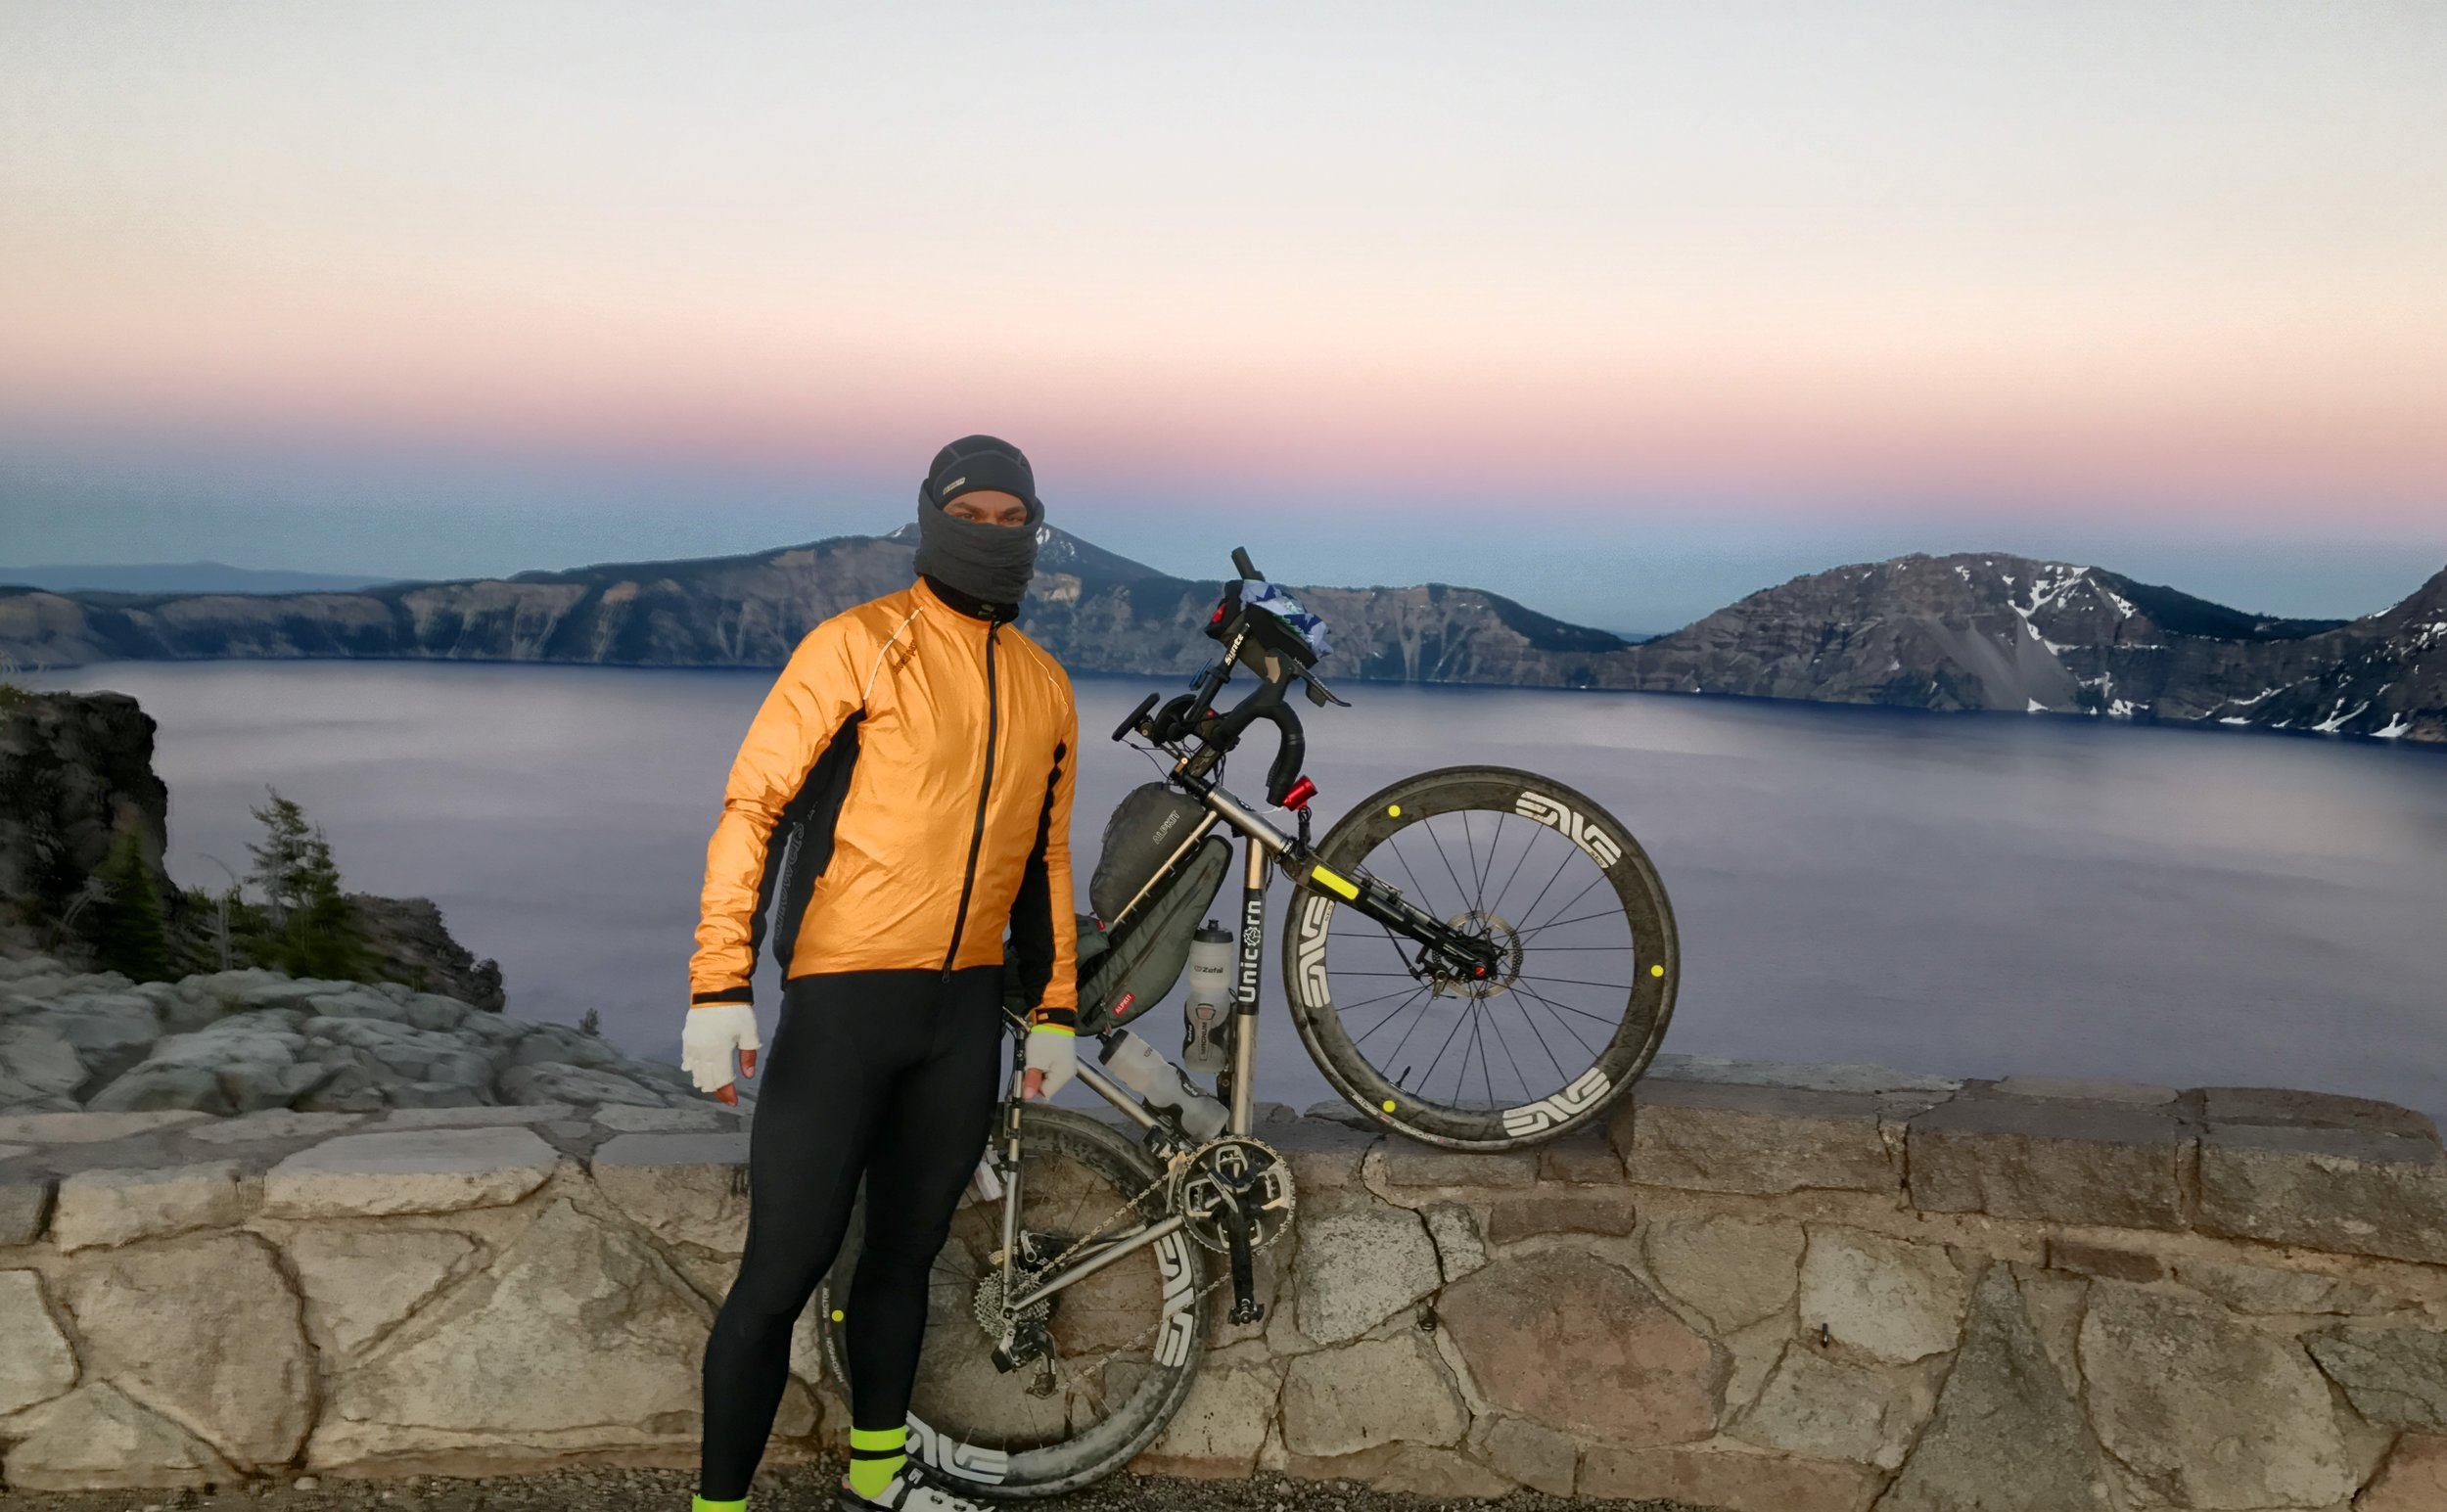 - Jason tested his limits finishing the self-supported 1000 mile Steens Mazama race in Oregon in 2017.